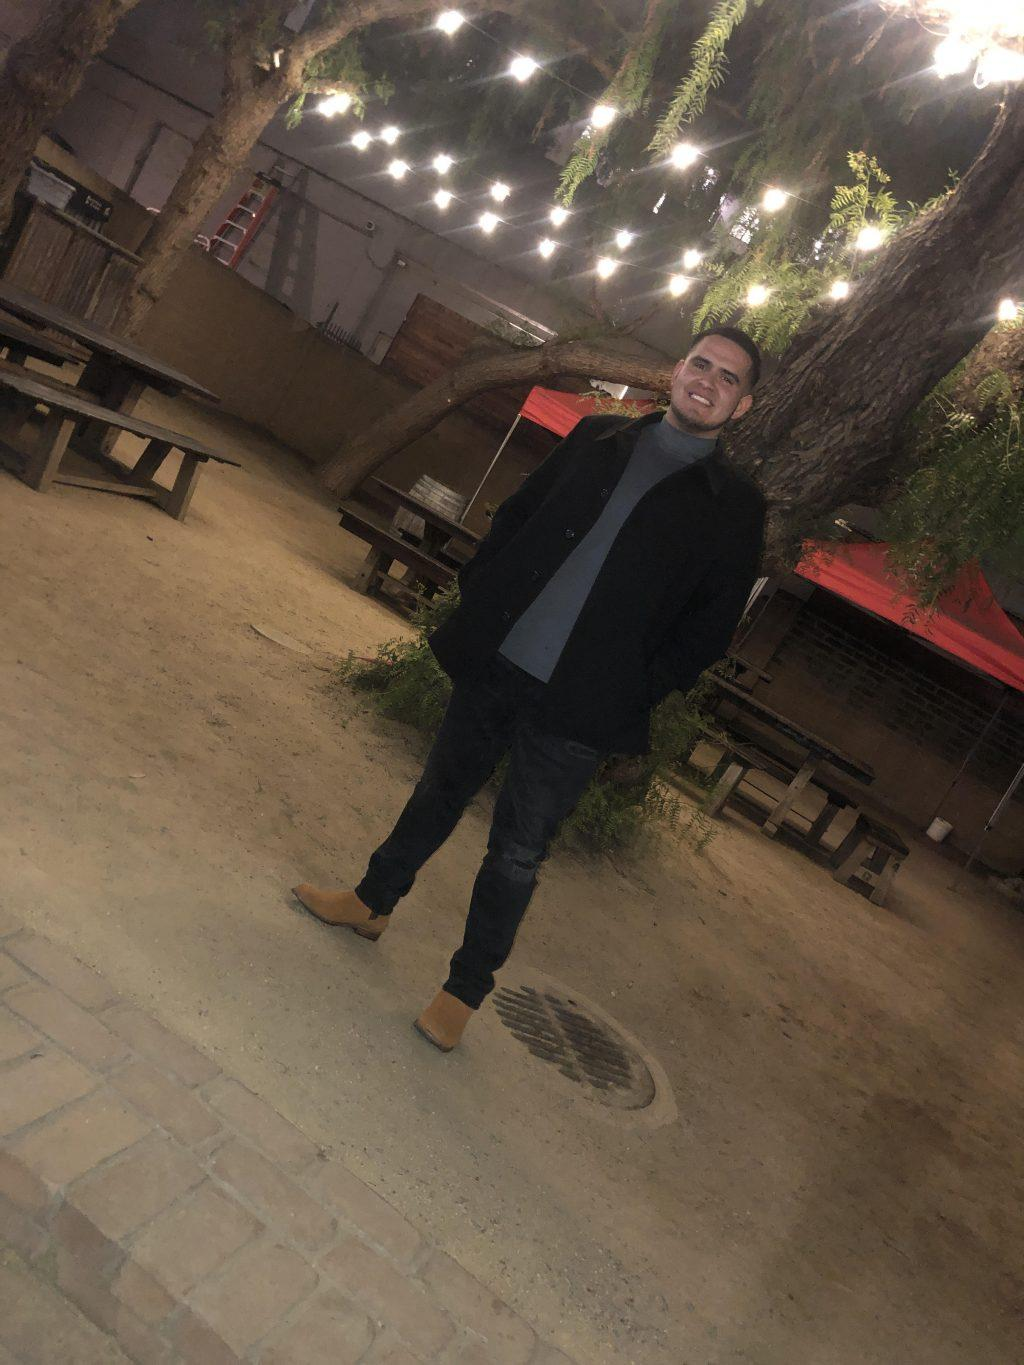 Garcia smiles in front of a restaurant. He said he hopes to make meaningful connections at Pepperdine.